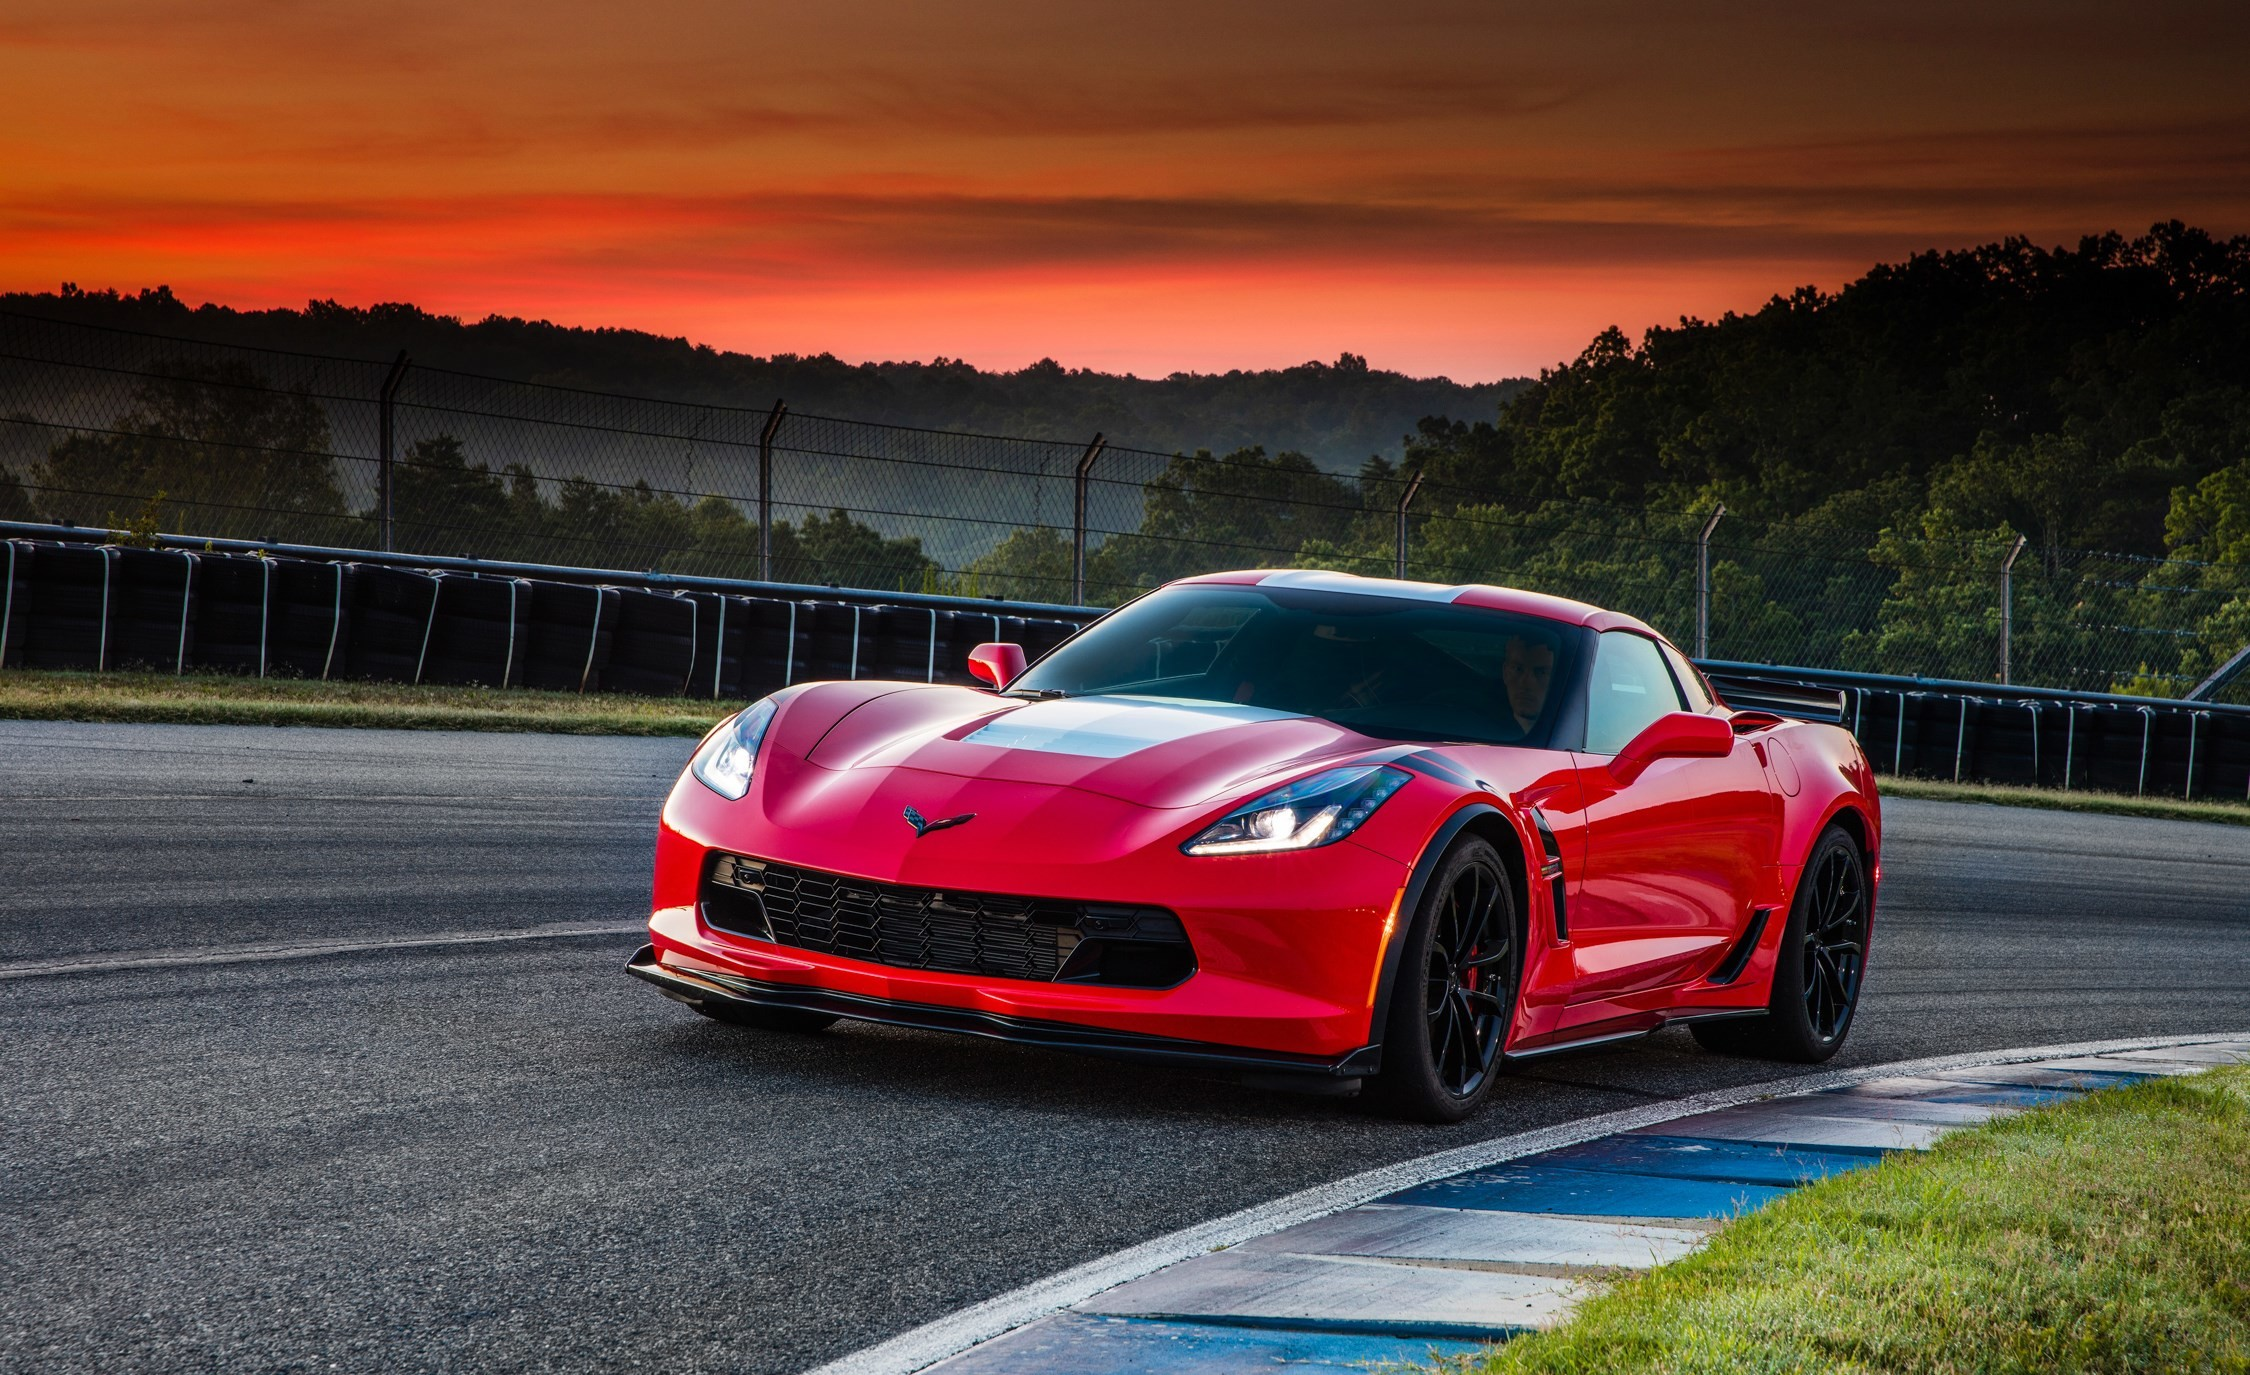 2250x1375 Beautiful chevrolet corvette c7